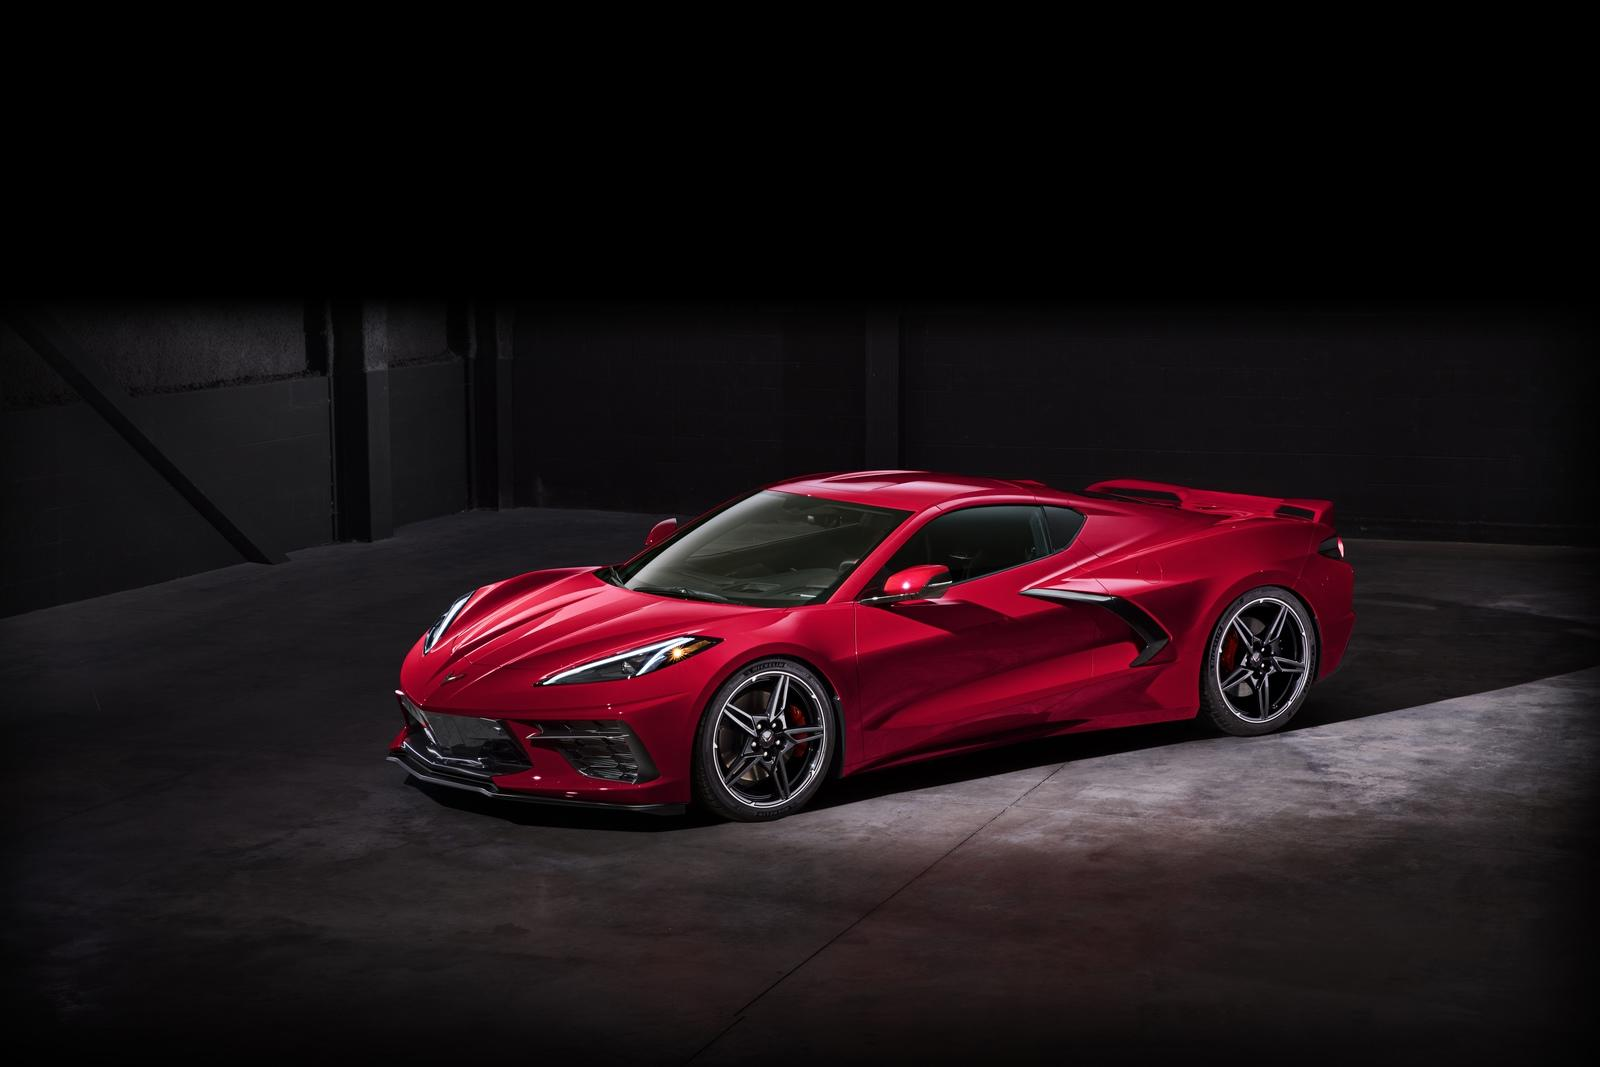 c8 corvette engine choices